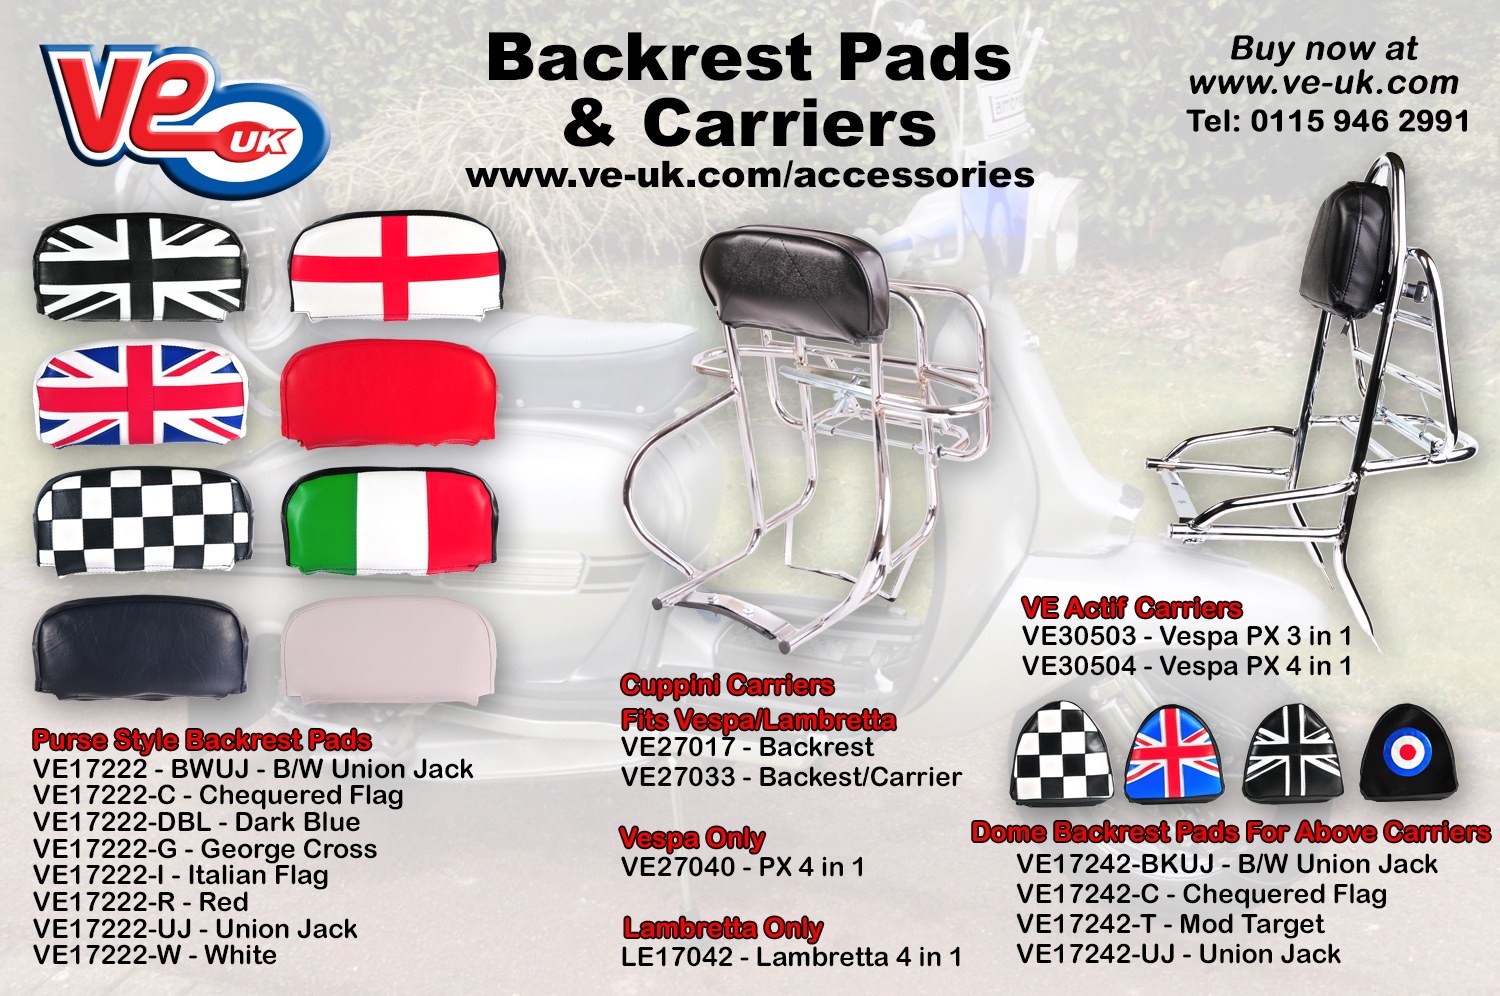 Back rest pads - carriers